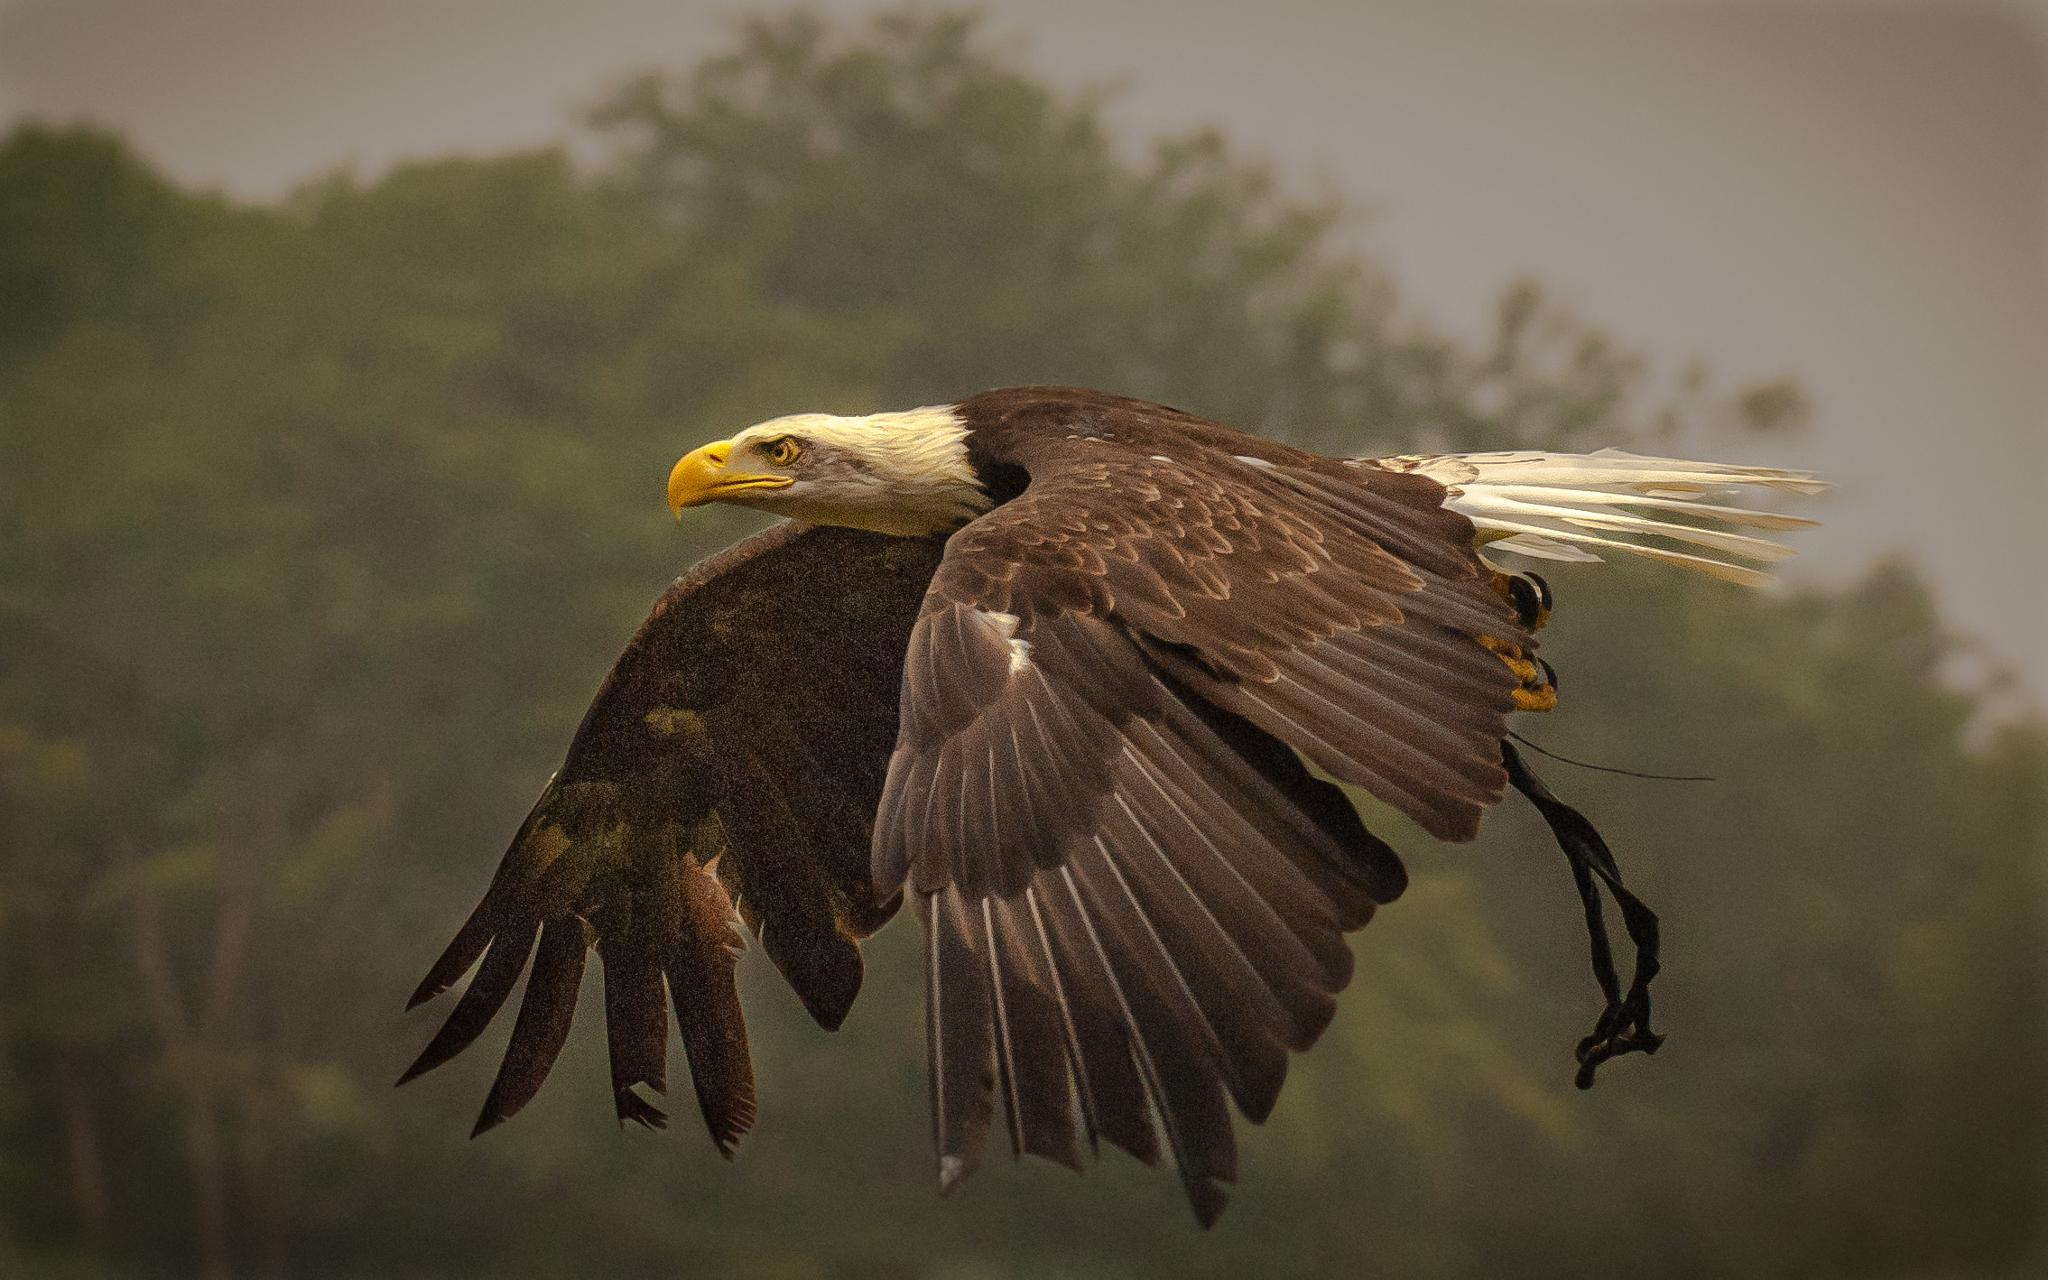 Amarican sea eagle at a Bird show by frans.ditucci